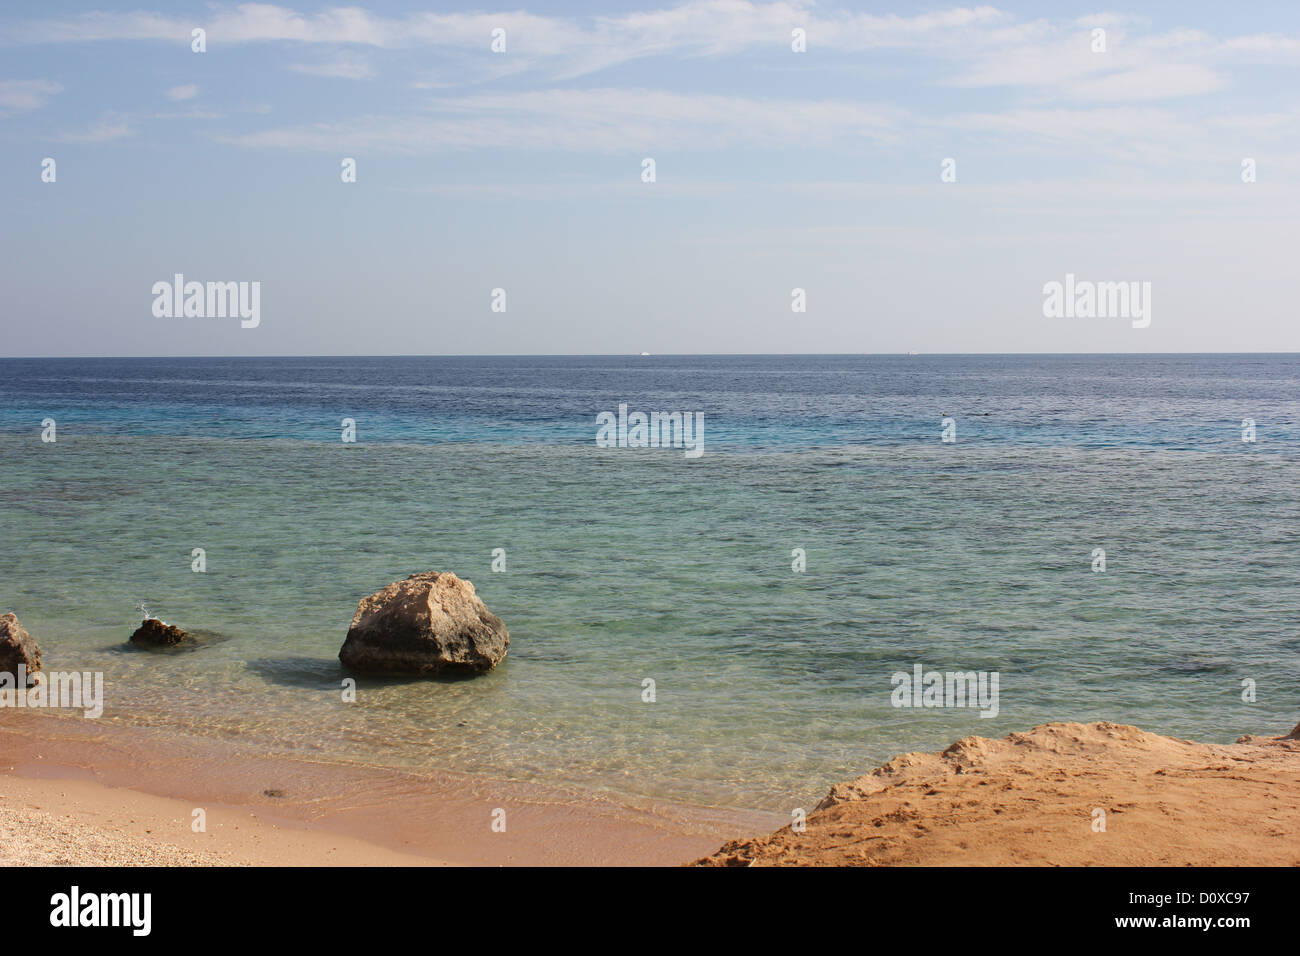 Beach View onto the Red Sea - Stock Image